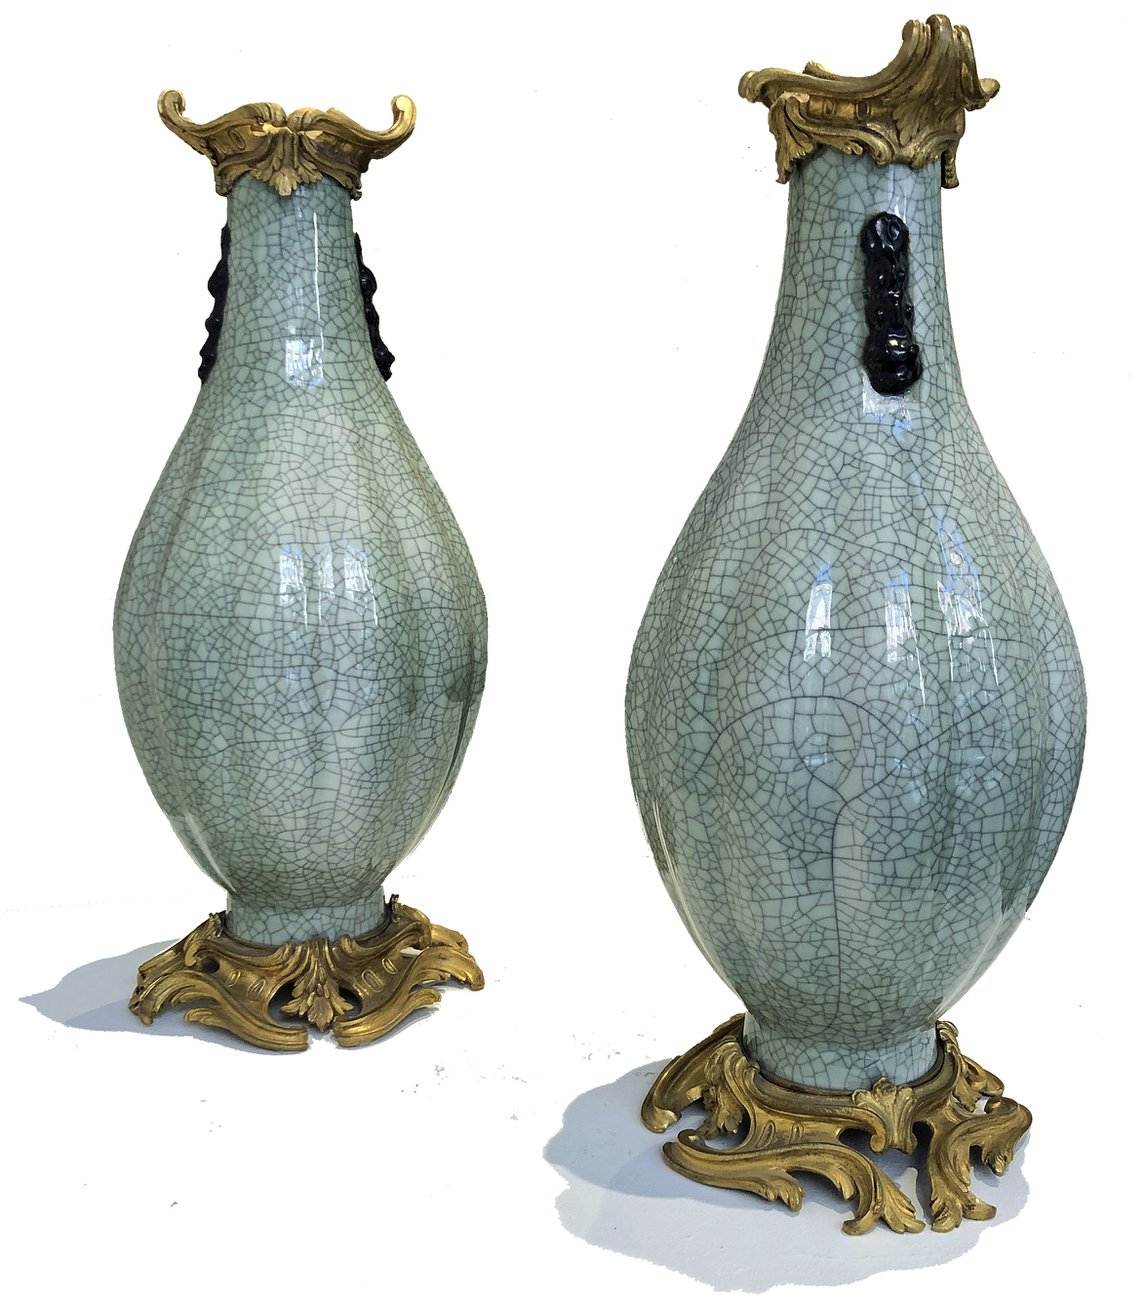 Preview image for Pair of Ormolu-Mounted Chinese Craqulaured Celadon Vases